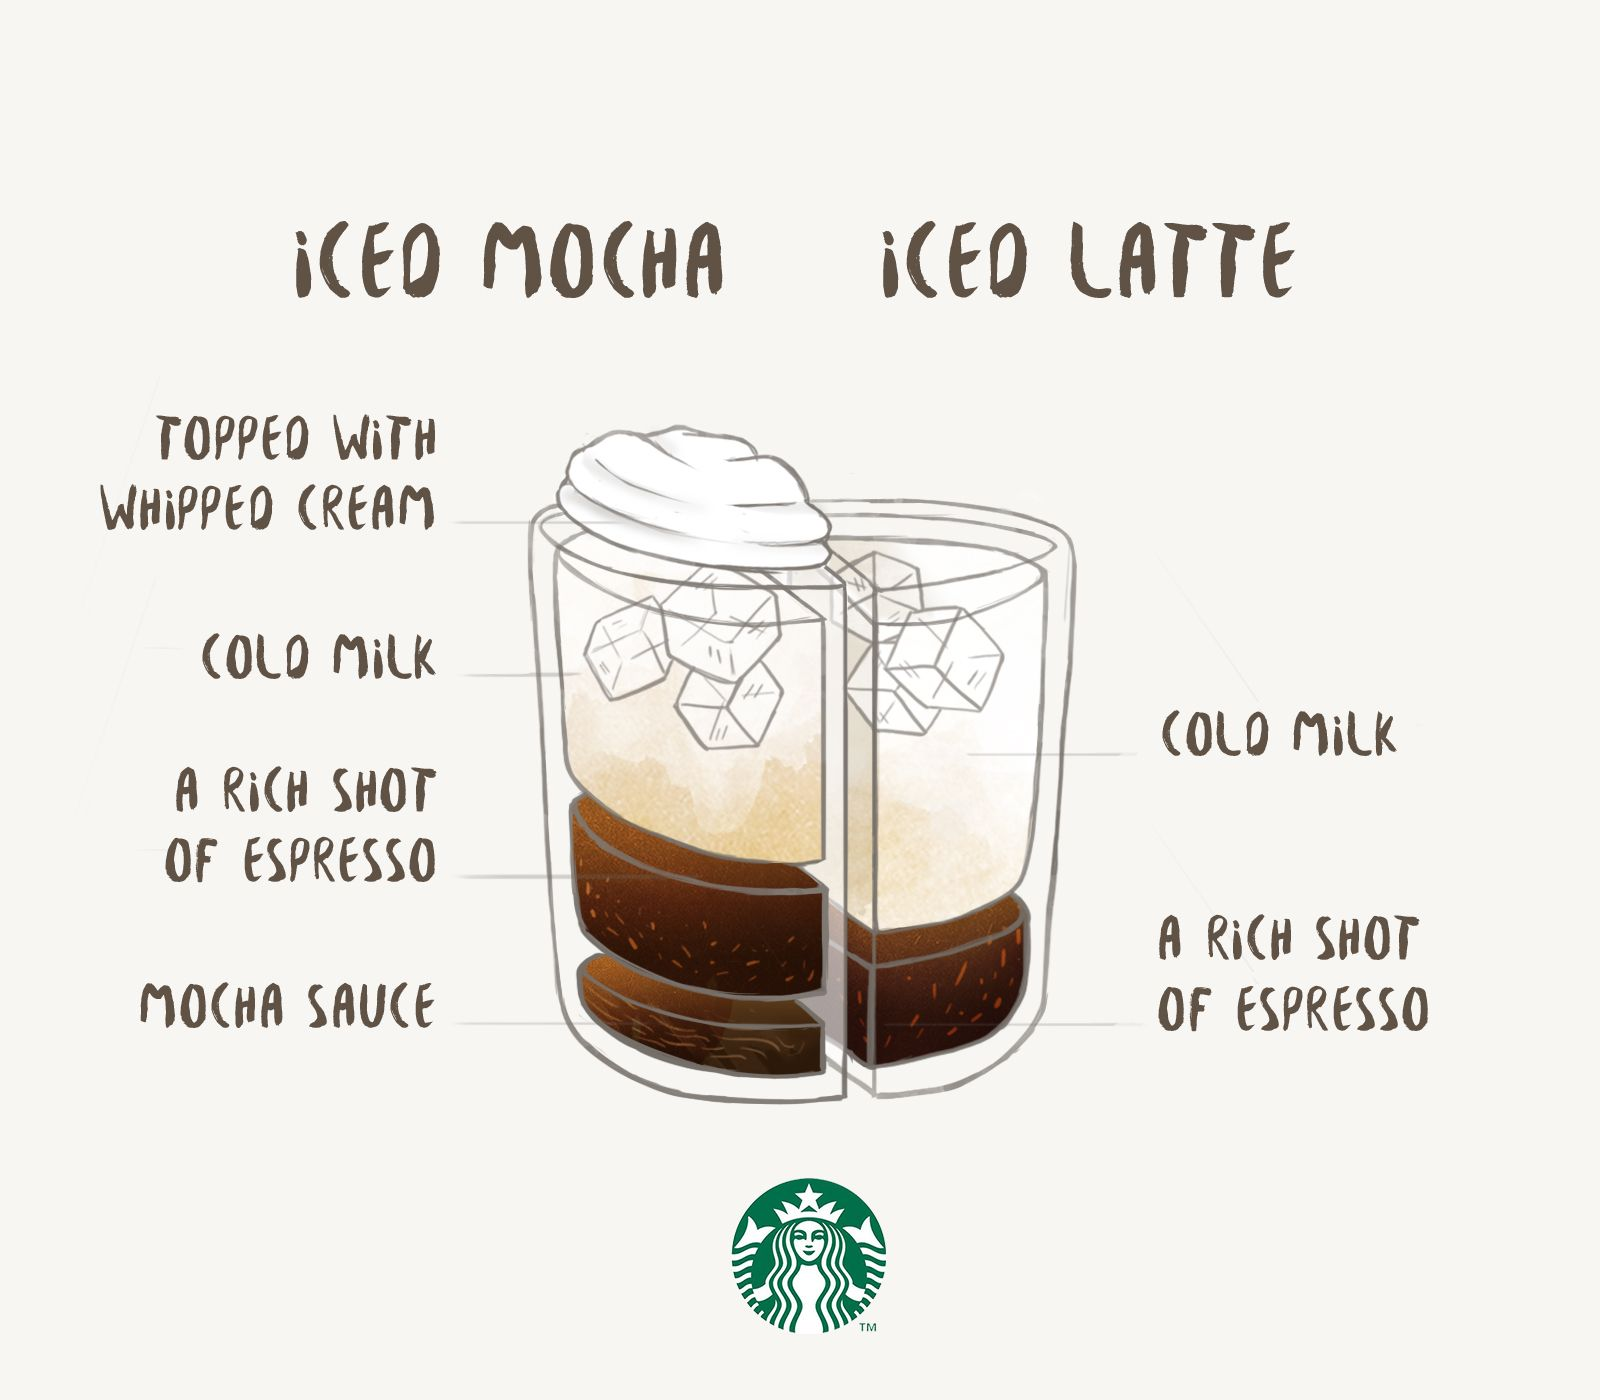 Coffee Americano Starbucks Two Delicious Ways To Enjoy Iced Espresso With Milk An